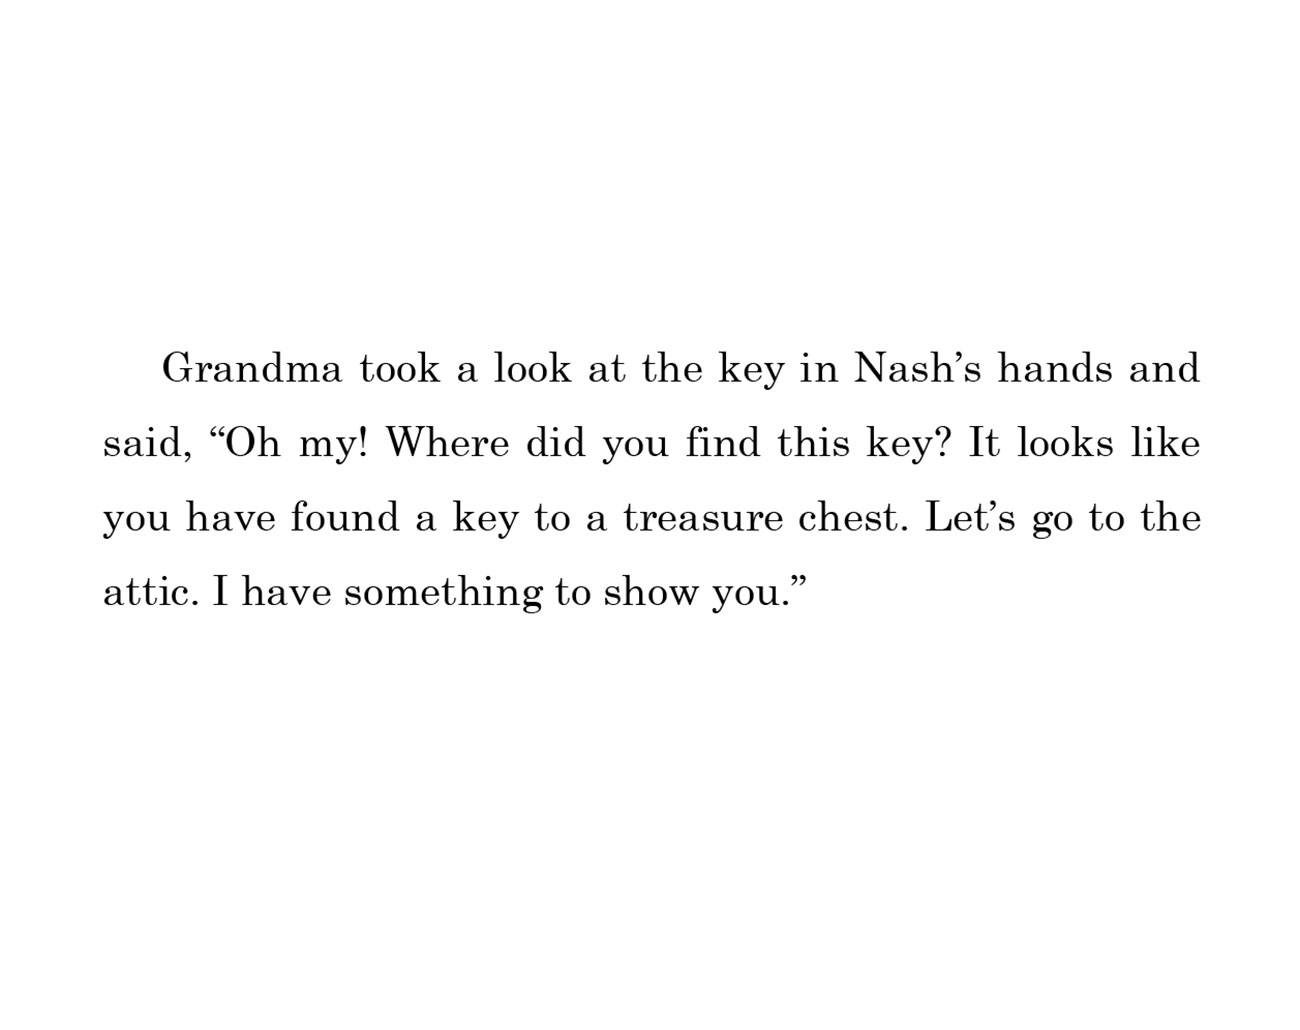 kids short story 'Down the memory lane with nash' by uma bala devarakonda - page 8